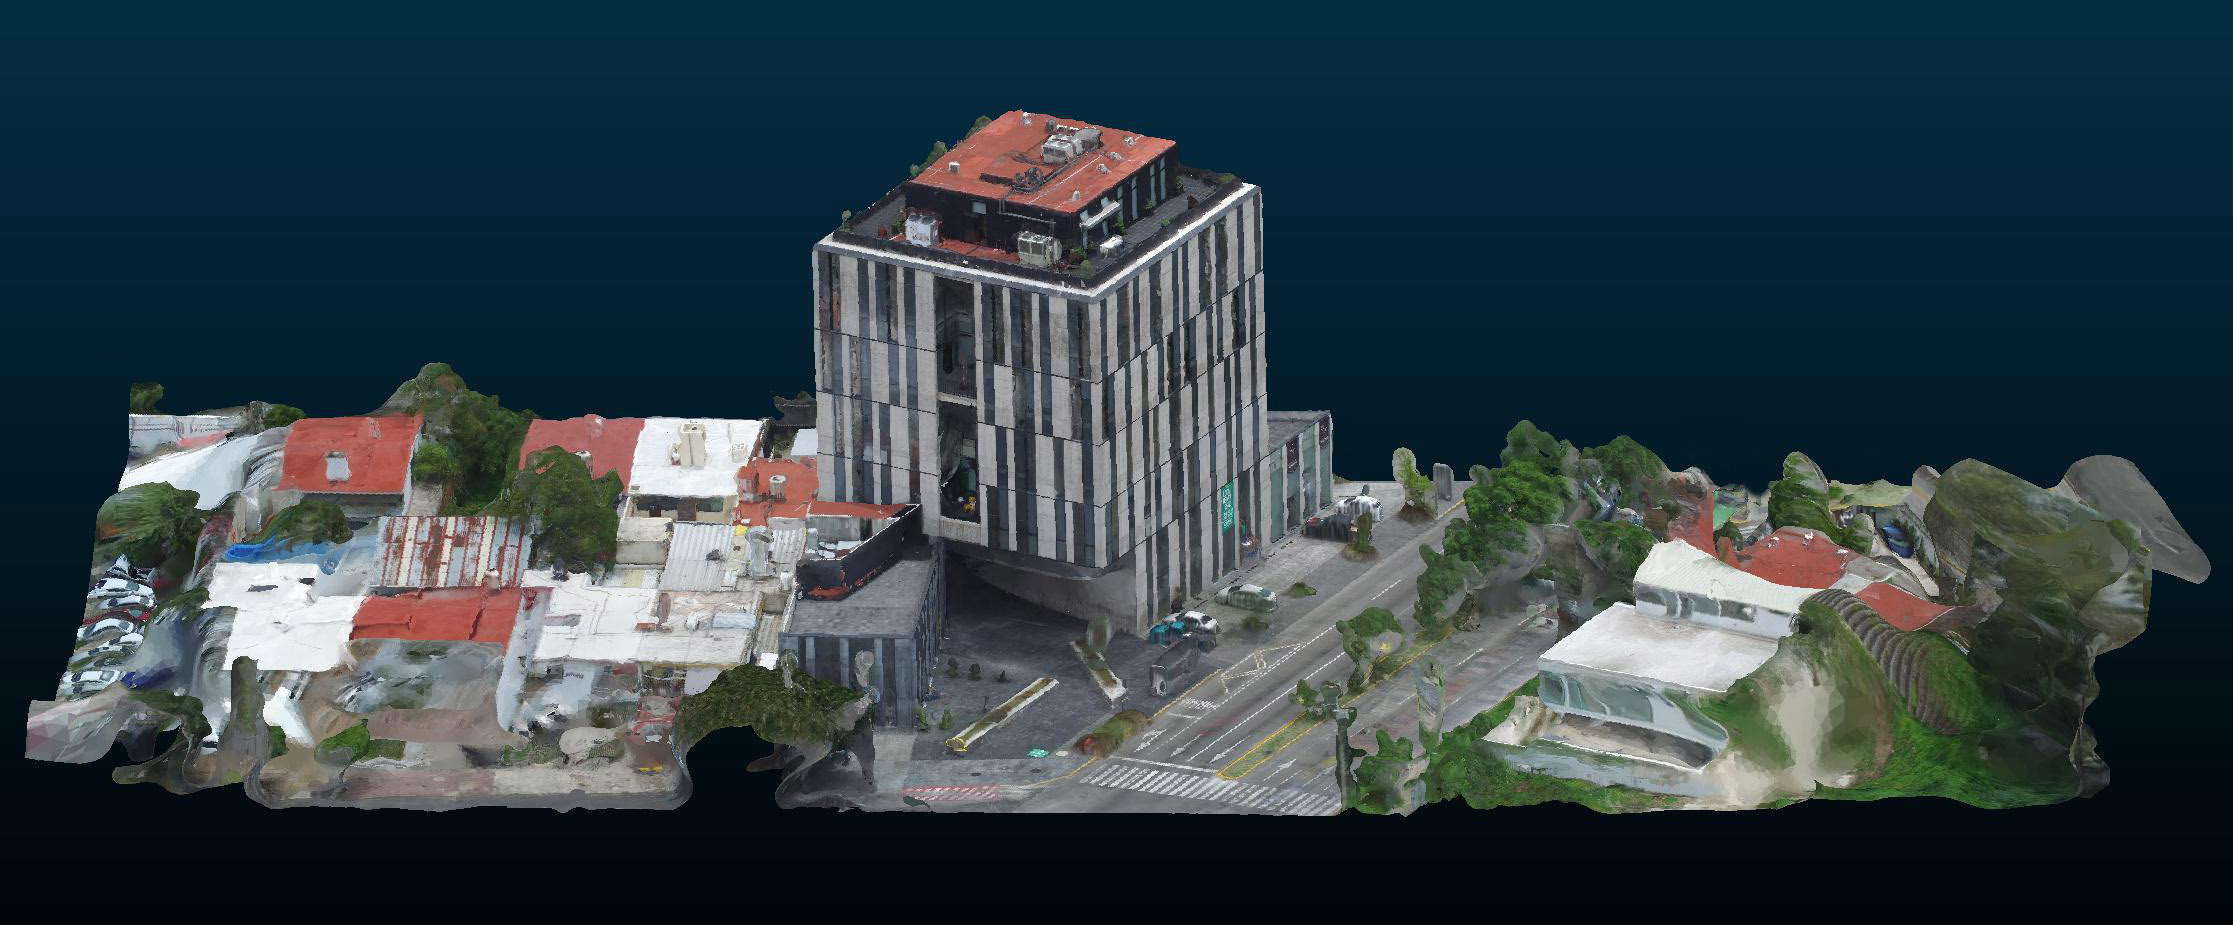 Collecting Imagery for Great 3D Models – Skycatch Support Center